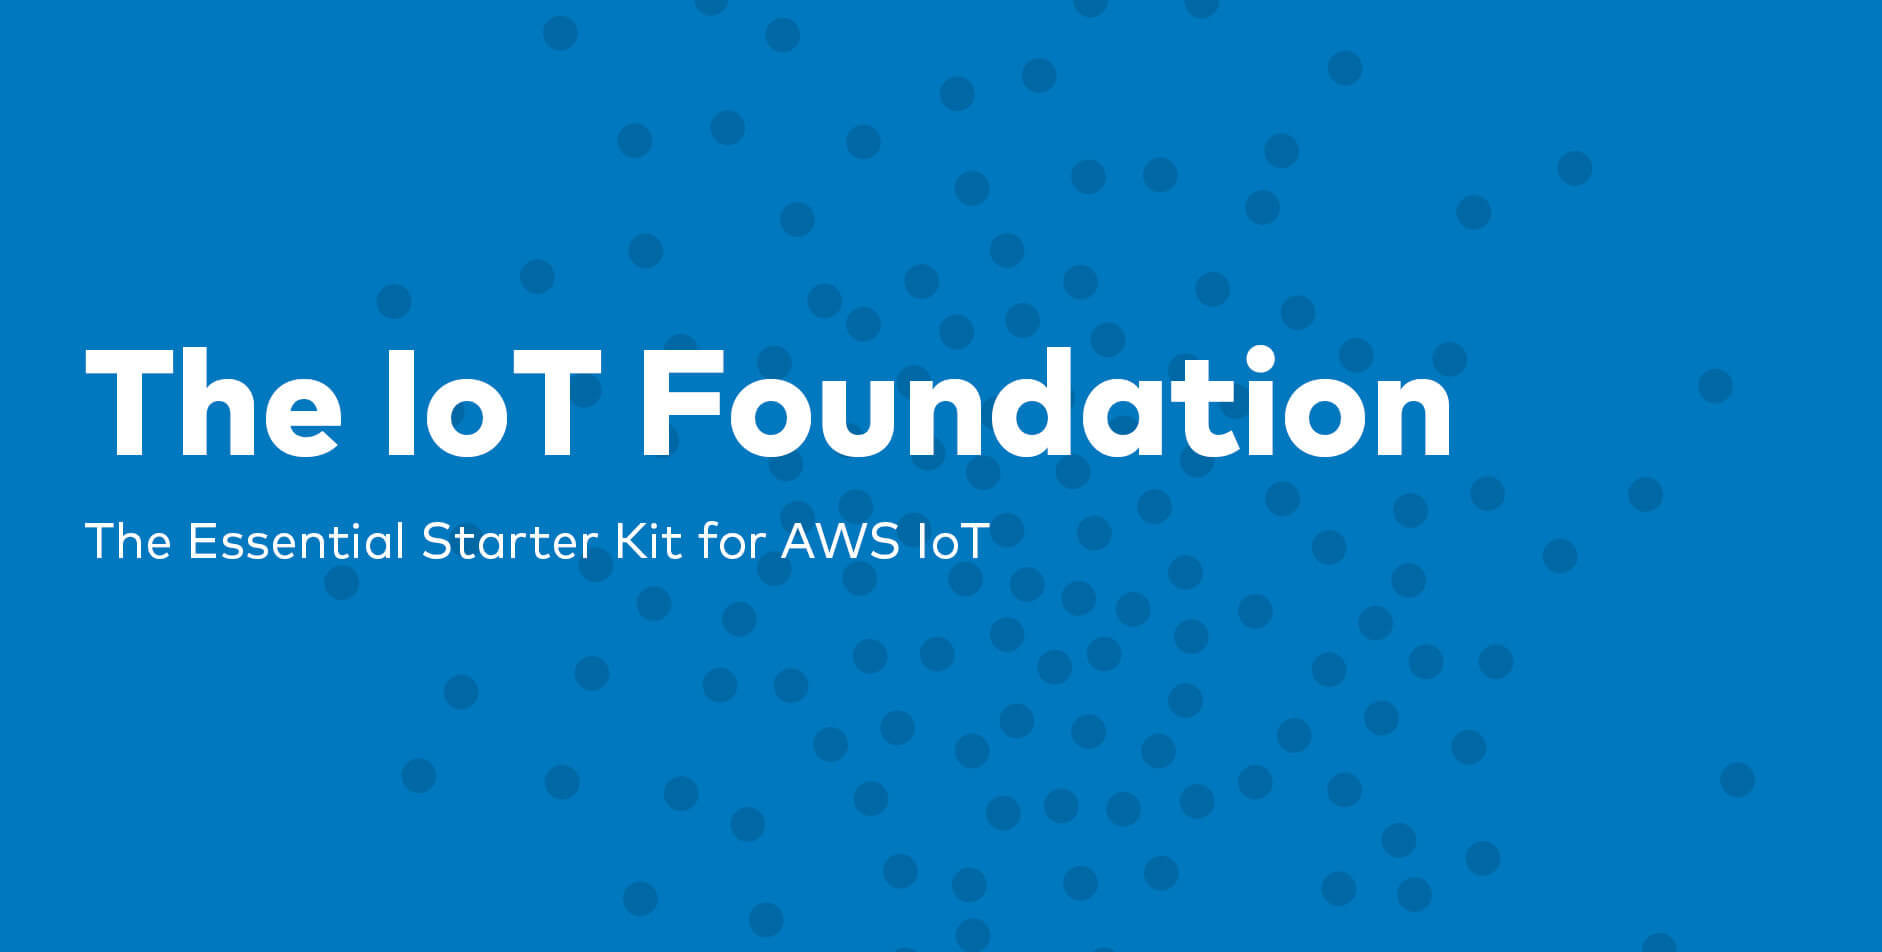 IoT Foundation: The Essential Starter Kit for AWS IoT